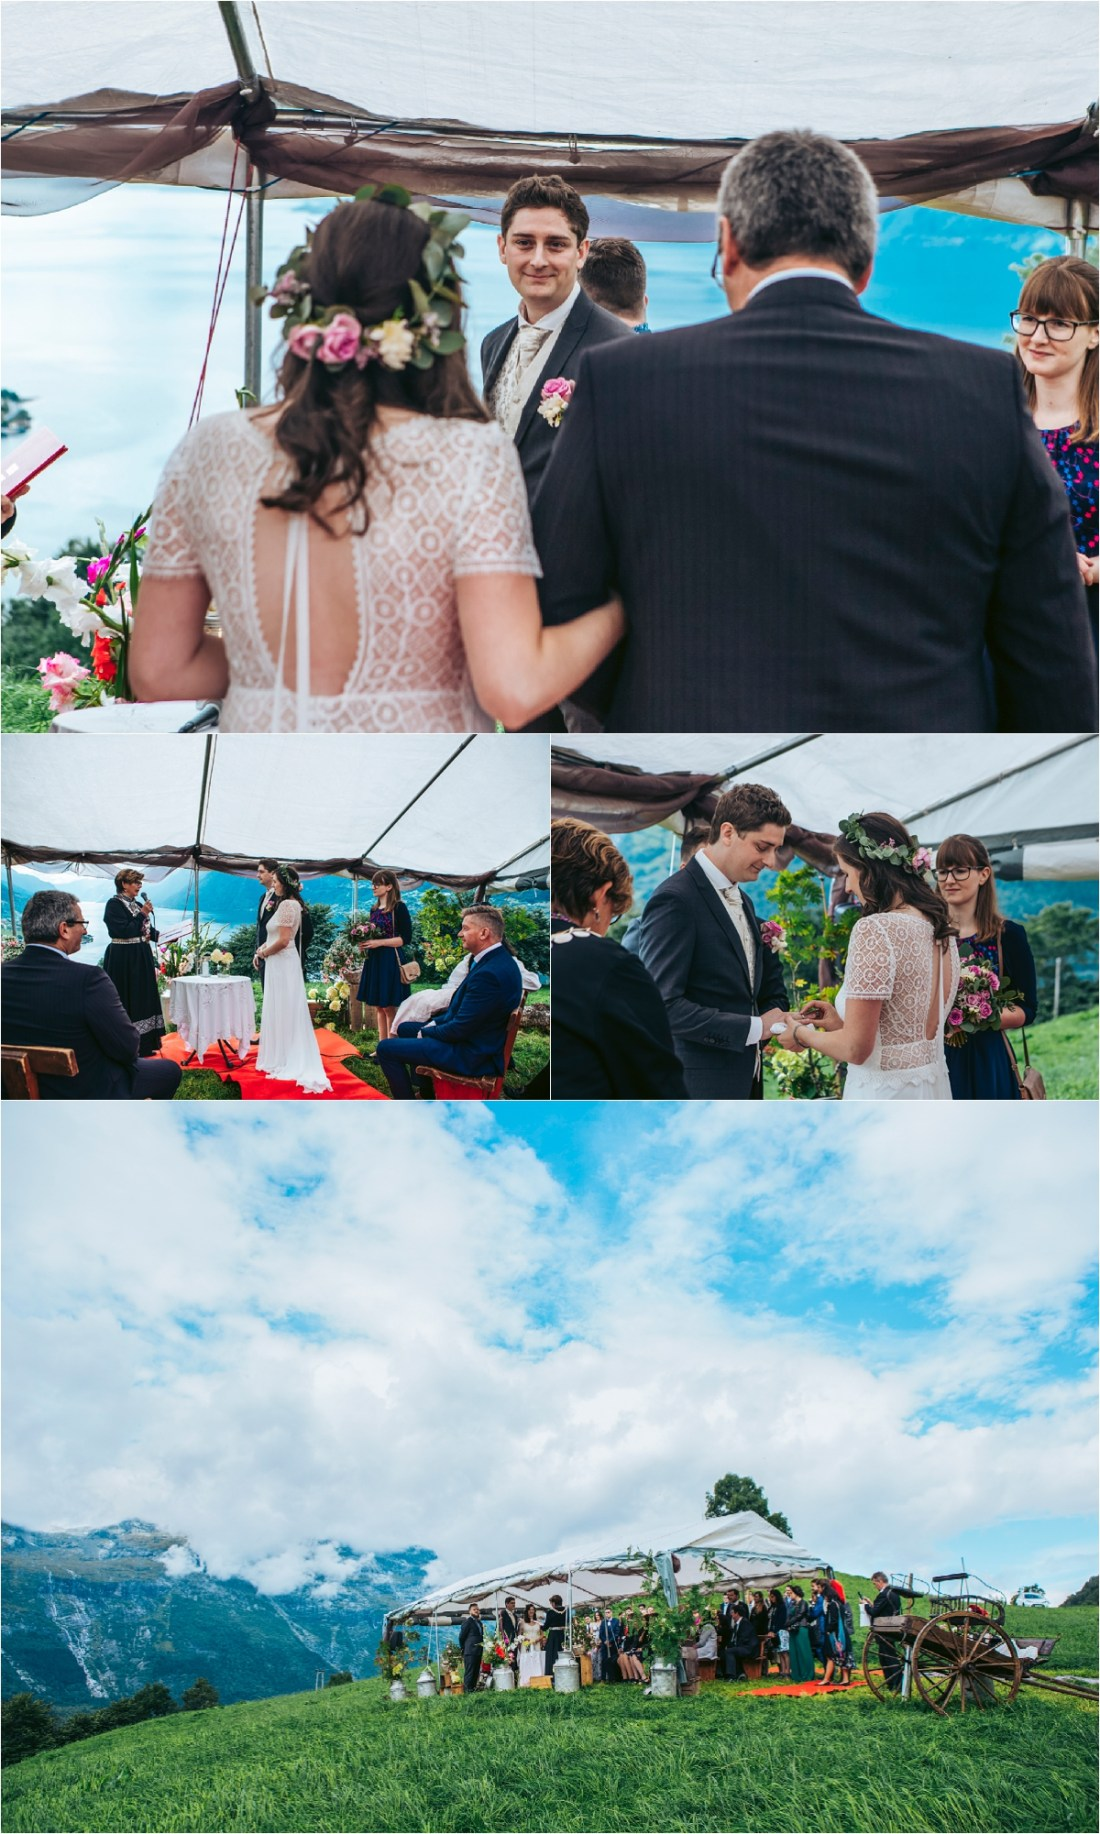 A wedding ceremony under a canopy in a field overlooking Hardanger Fjord in Norway by Fotograf Lene Fossdal